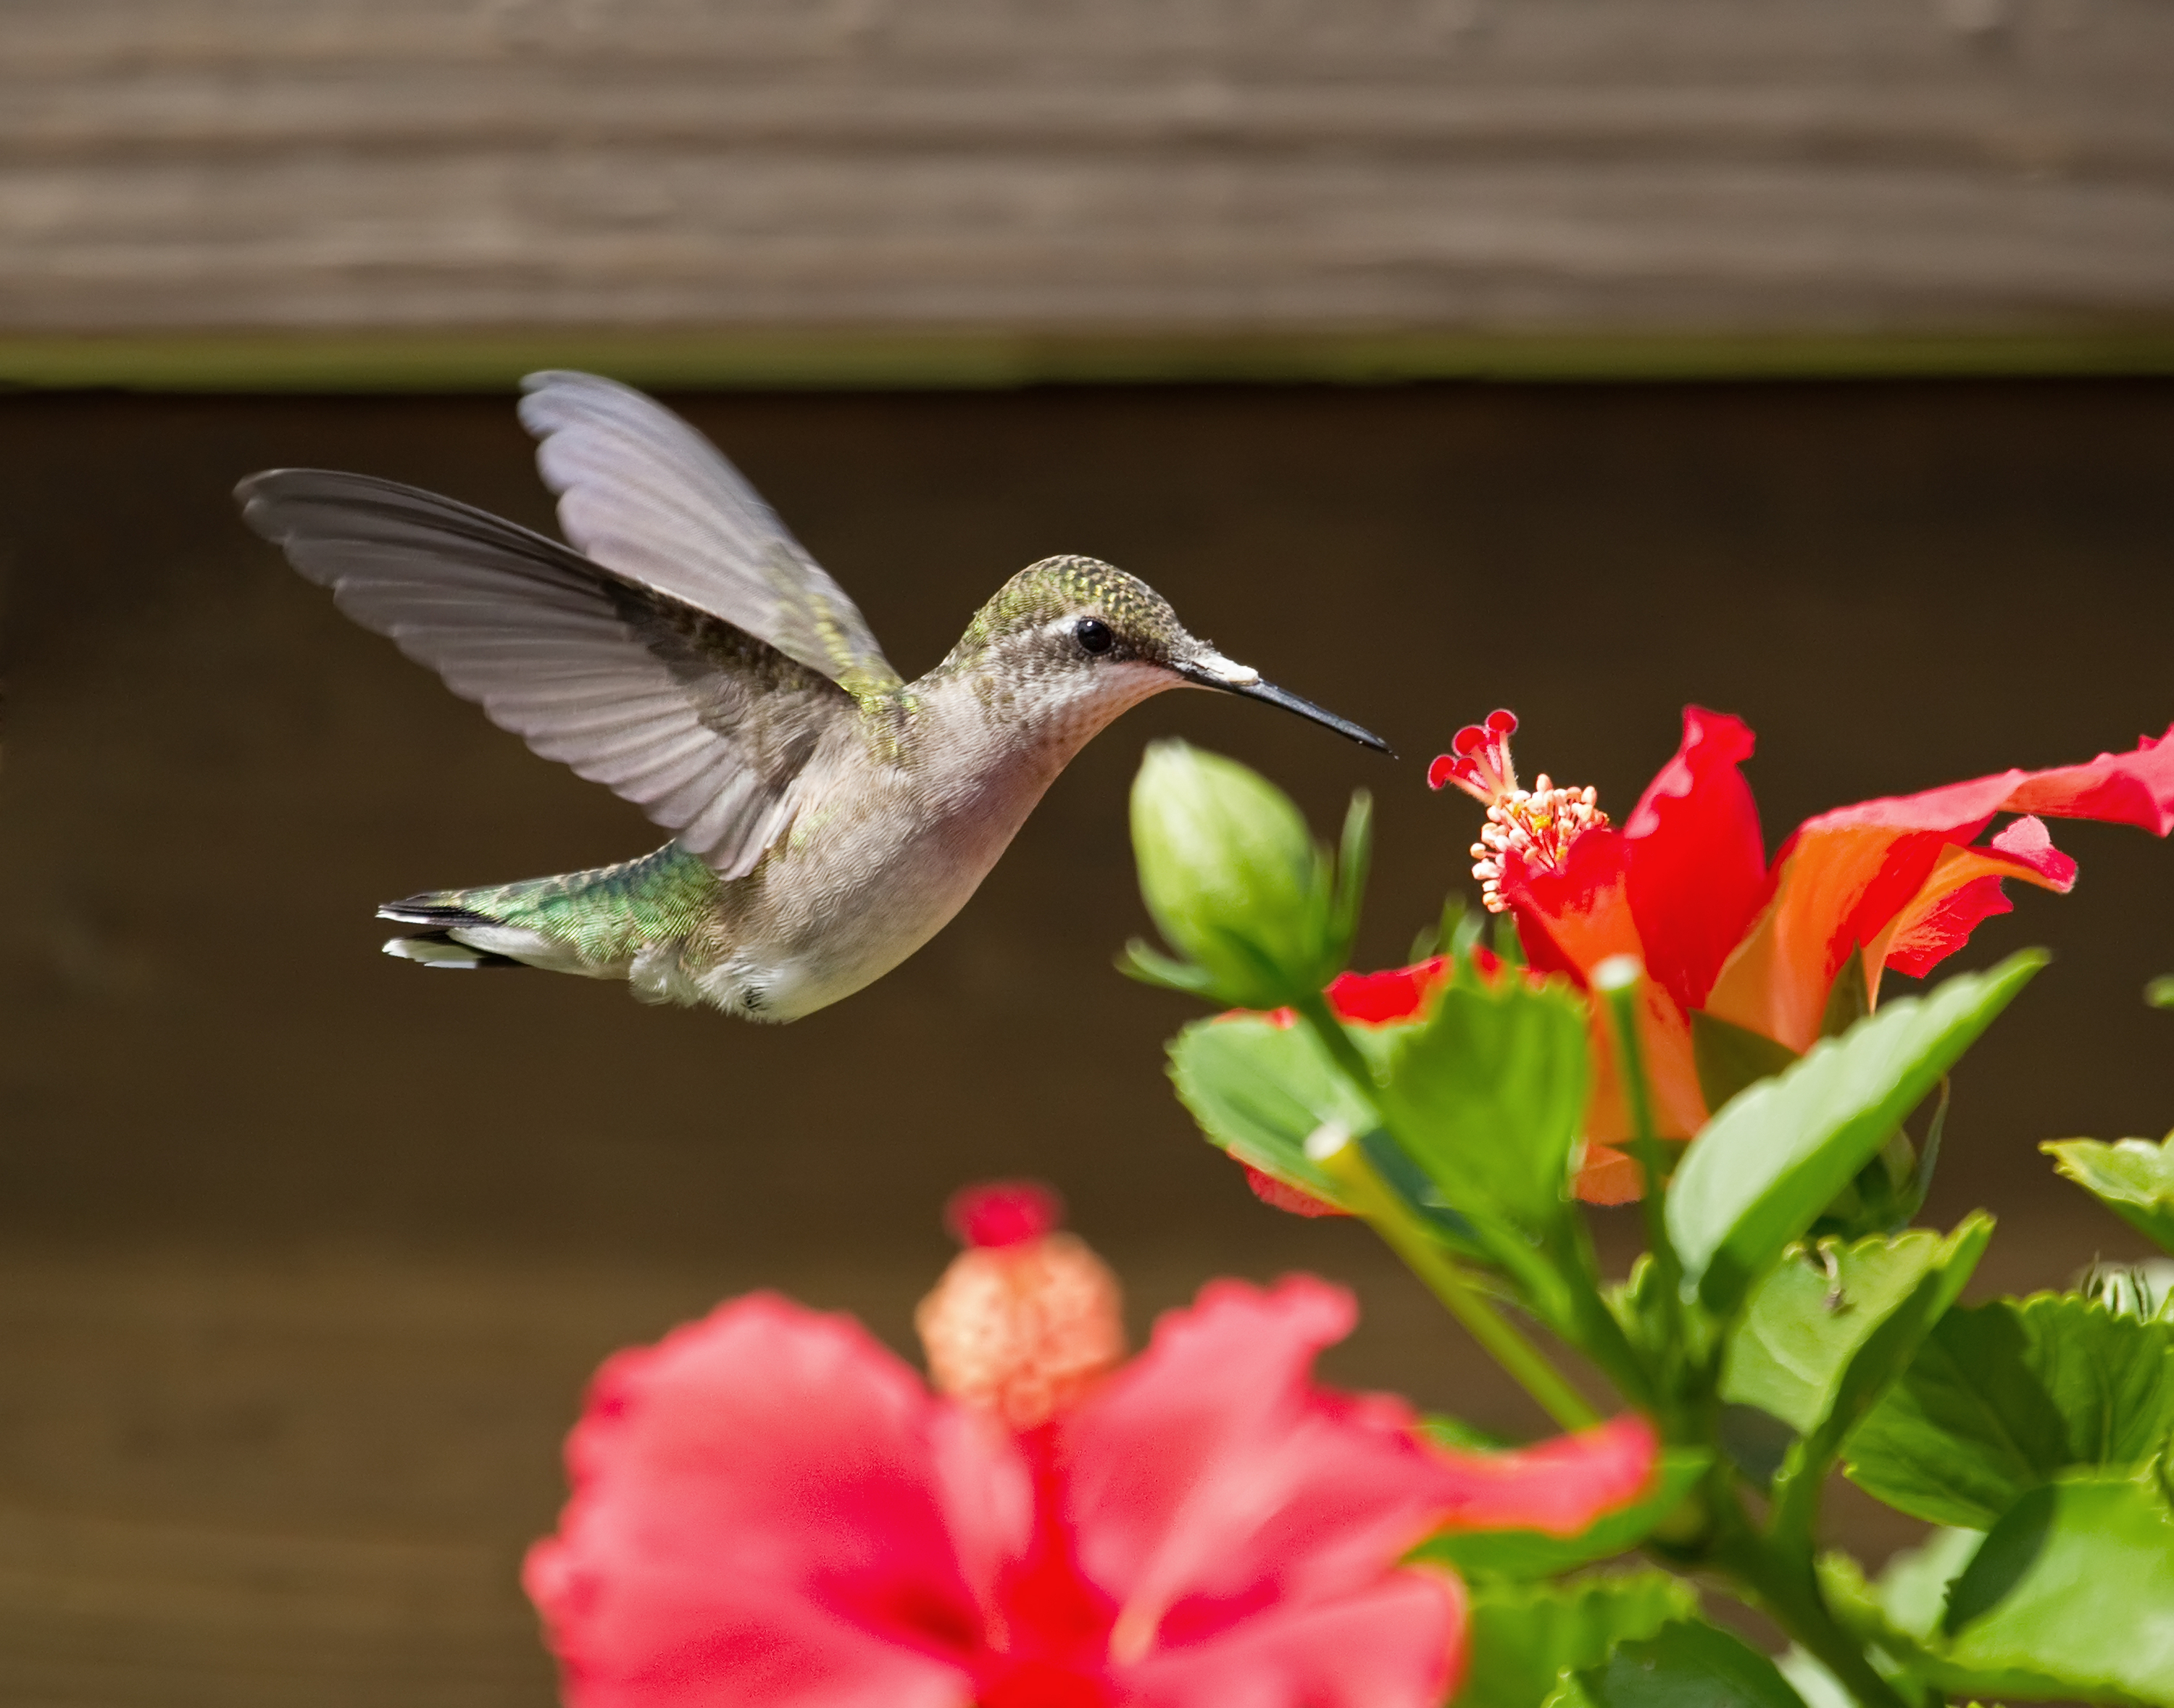 hummingbird getting nectar from a red flower